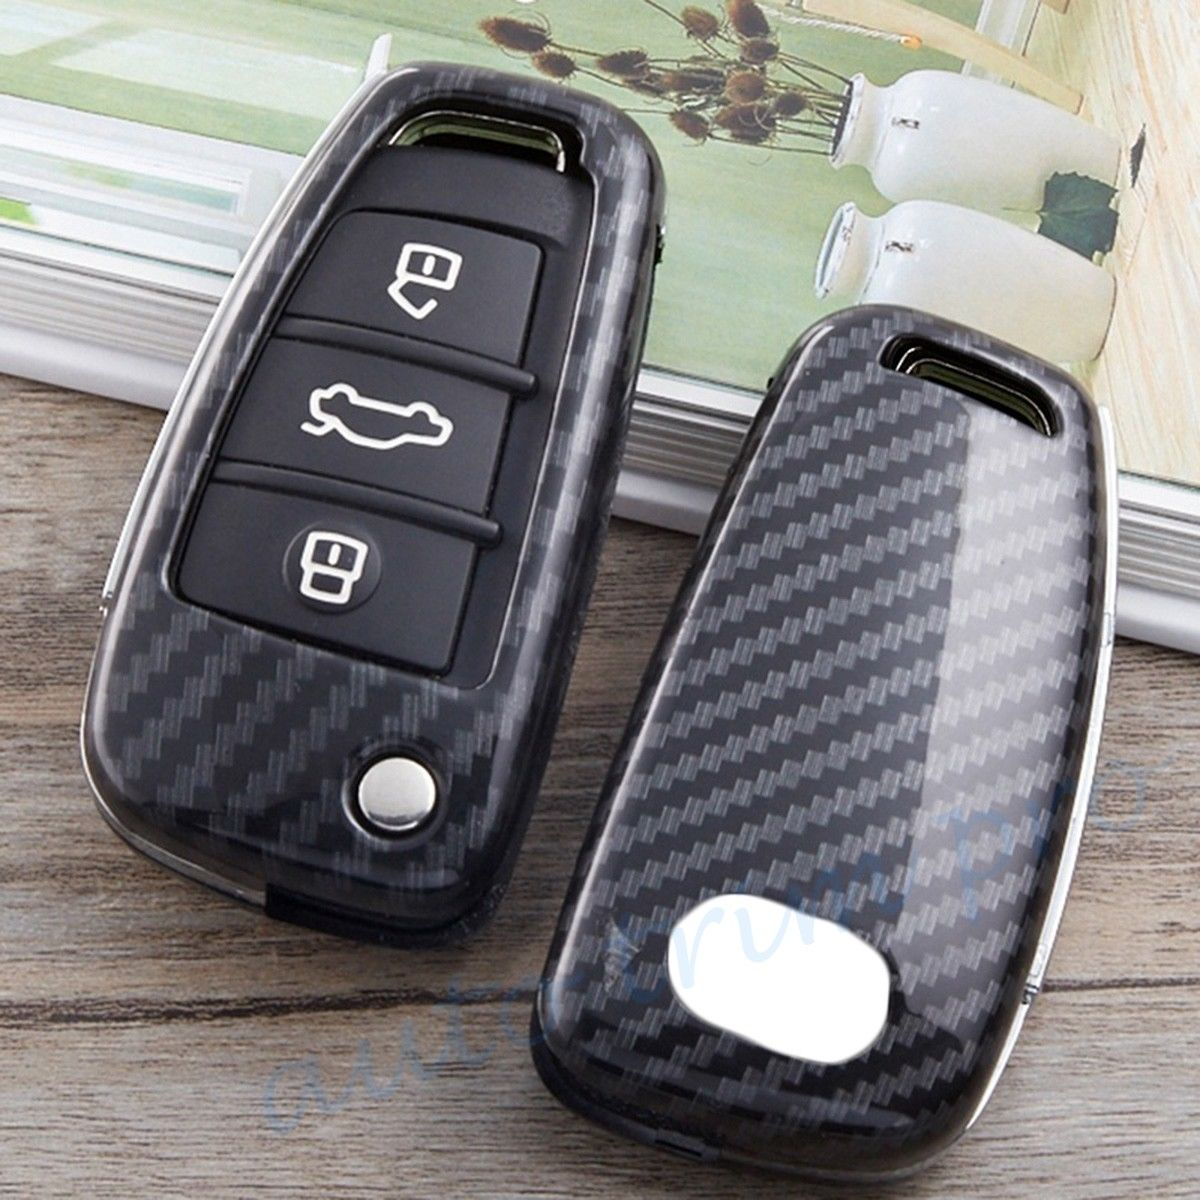 Metal Shell Key Case Holder Chain Fob Bag Cover For Audi A1 A3 S3 Q3 A6 Q7 Parts